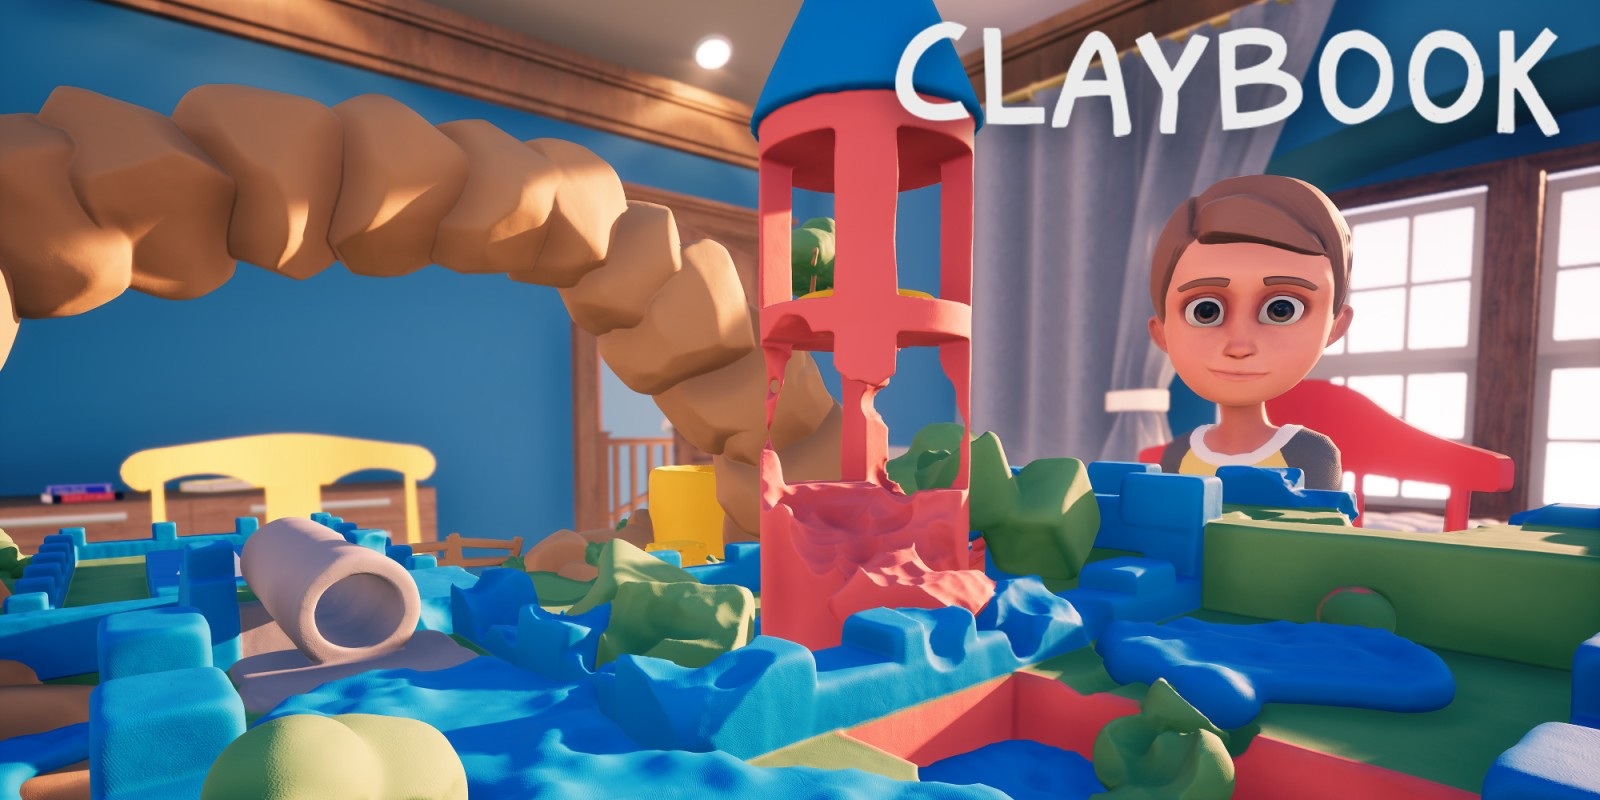 Claybook Nintendo Switch Review